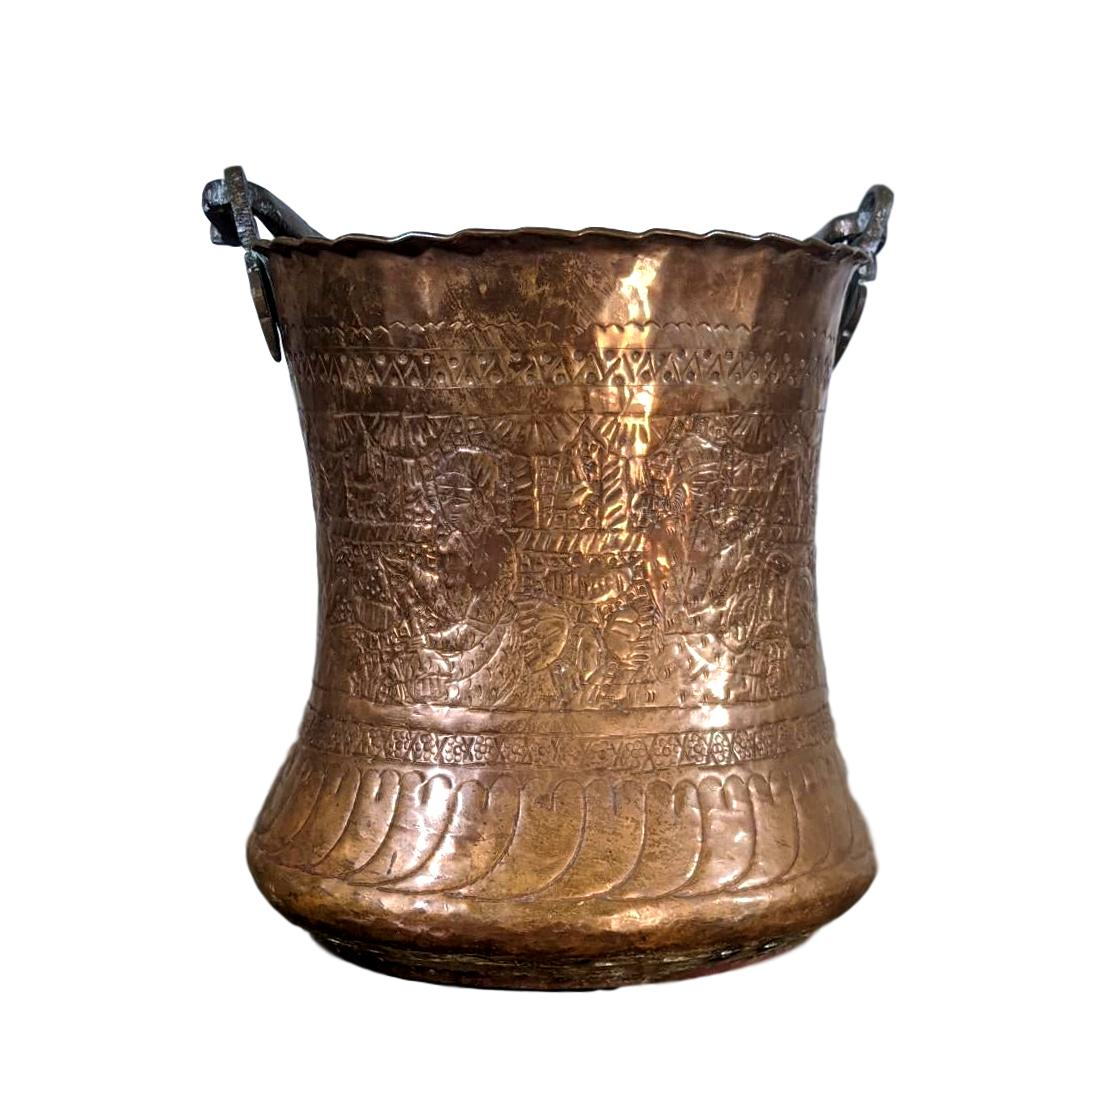 Large Safavid Etched Copper Bucket, Persia, 18th Century